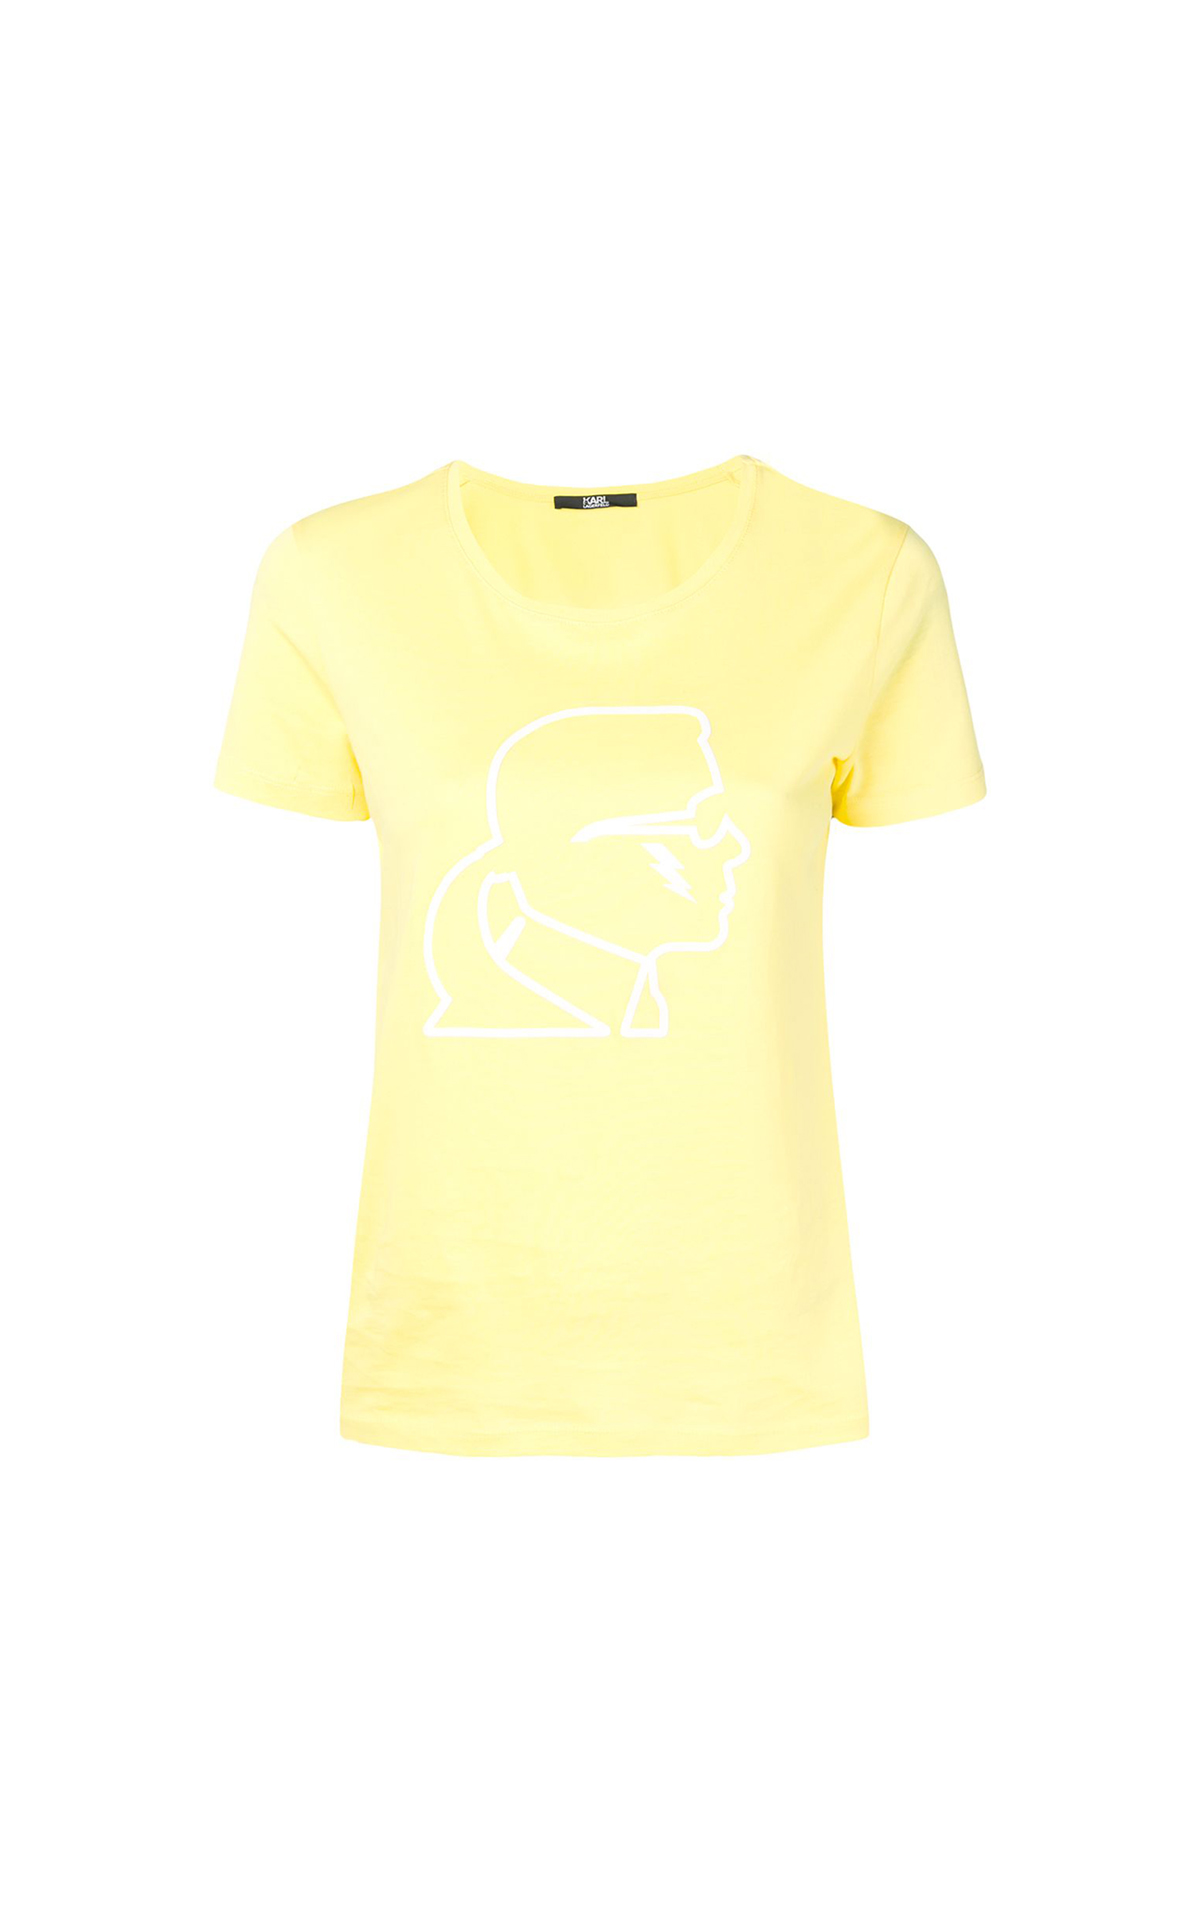 Karl Lagerfeld Ikonik Lightning Bolt Tee at The Bicester Village Shopping Collection